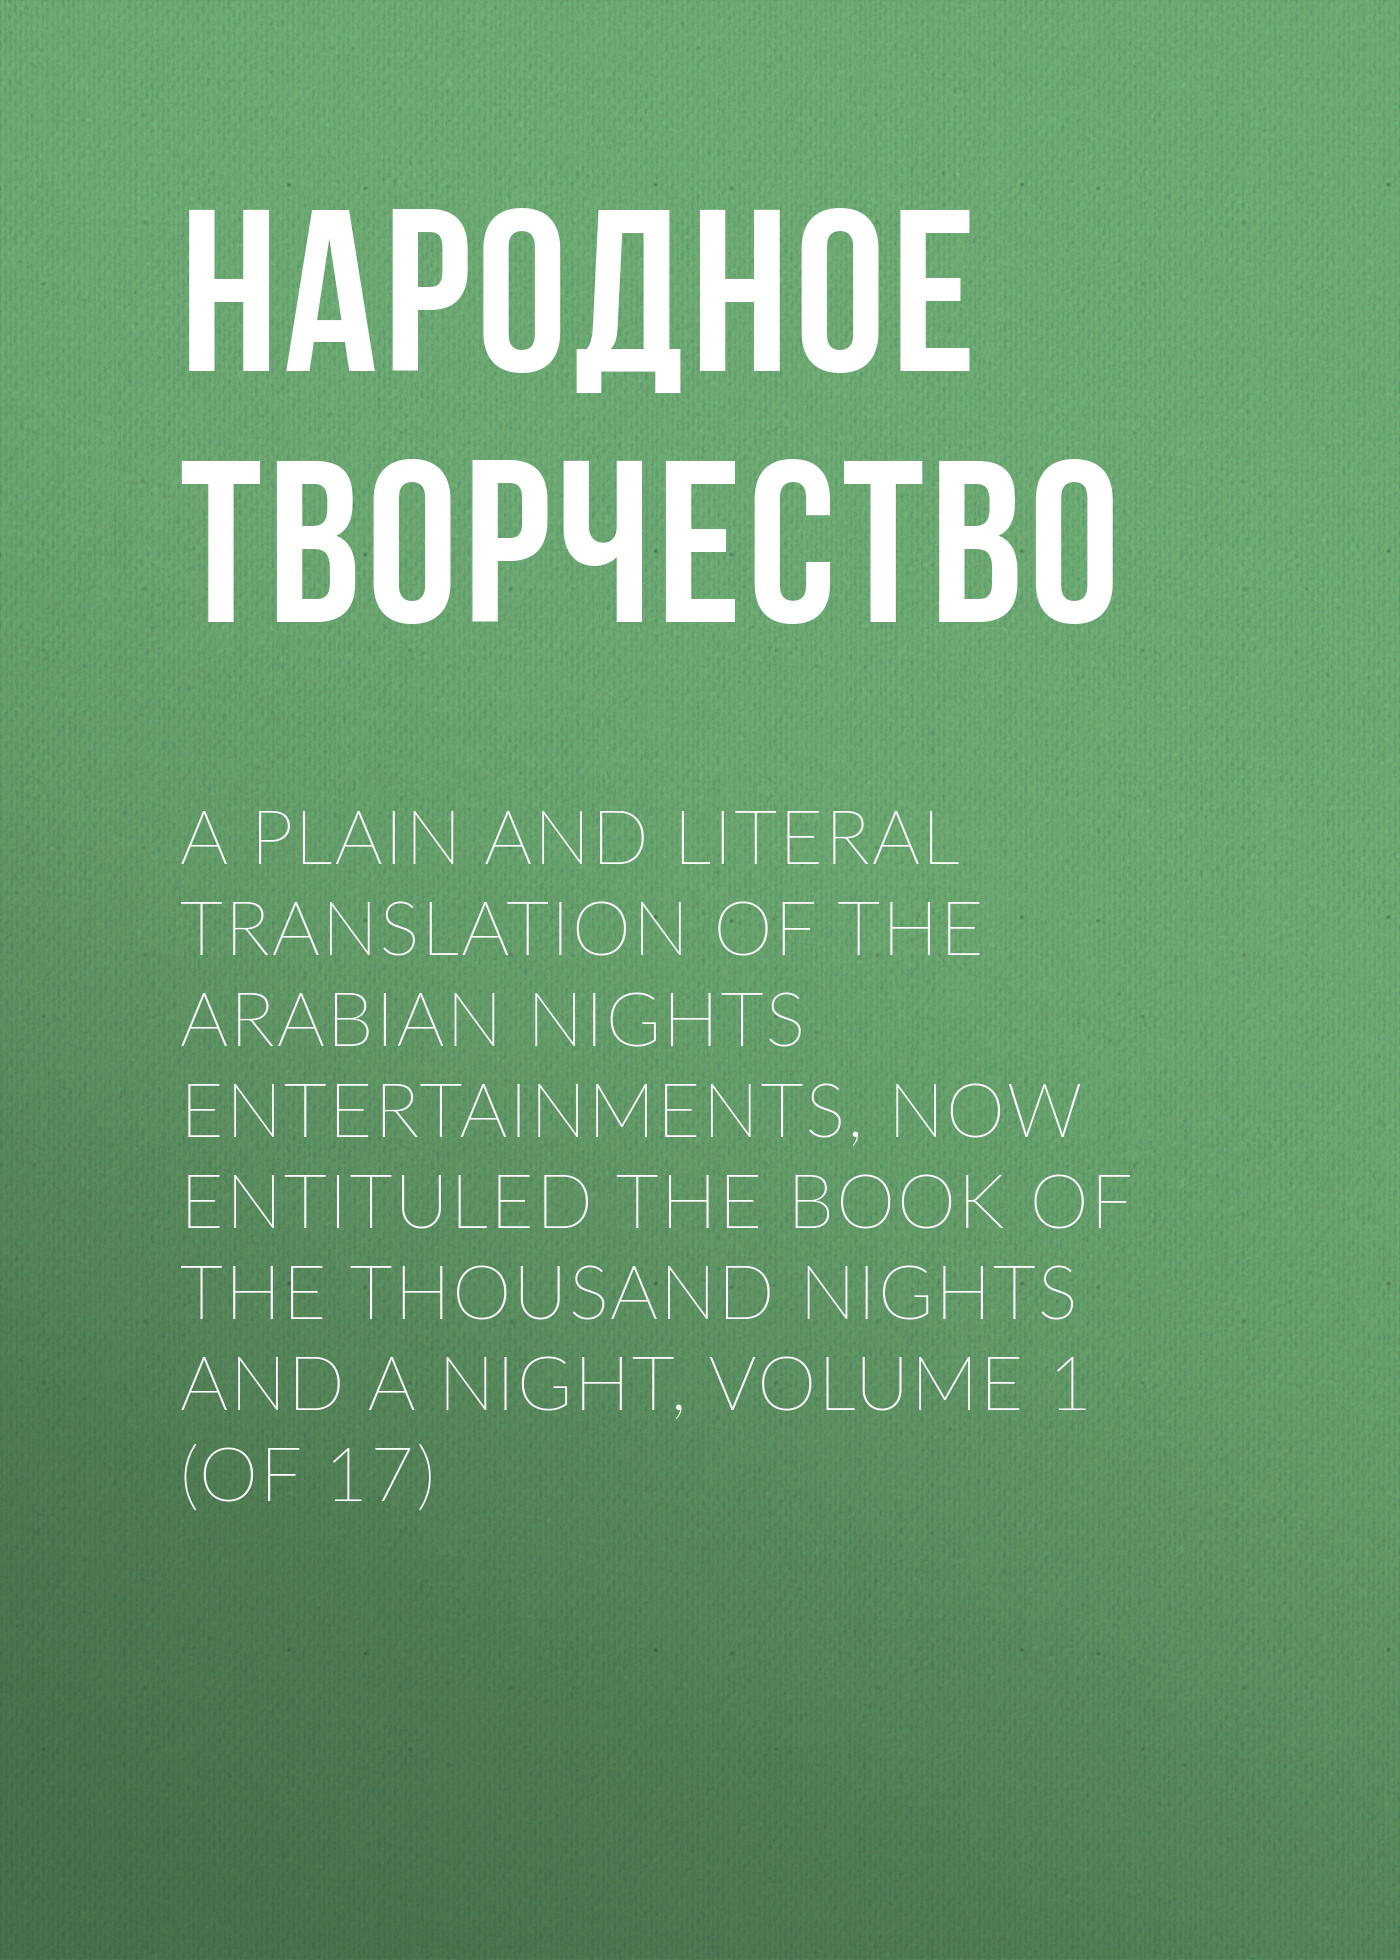 цена на Народное творчество A plain and literal translation of the Arabian nights entertainments, now entituled The Book of the Thousand Nights and a Night, Volume 1 (of 17)